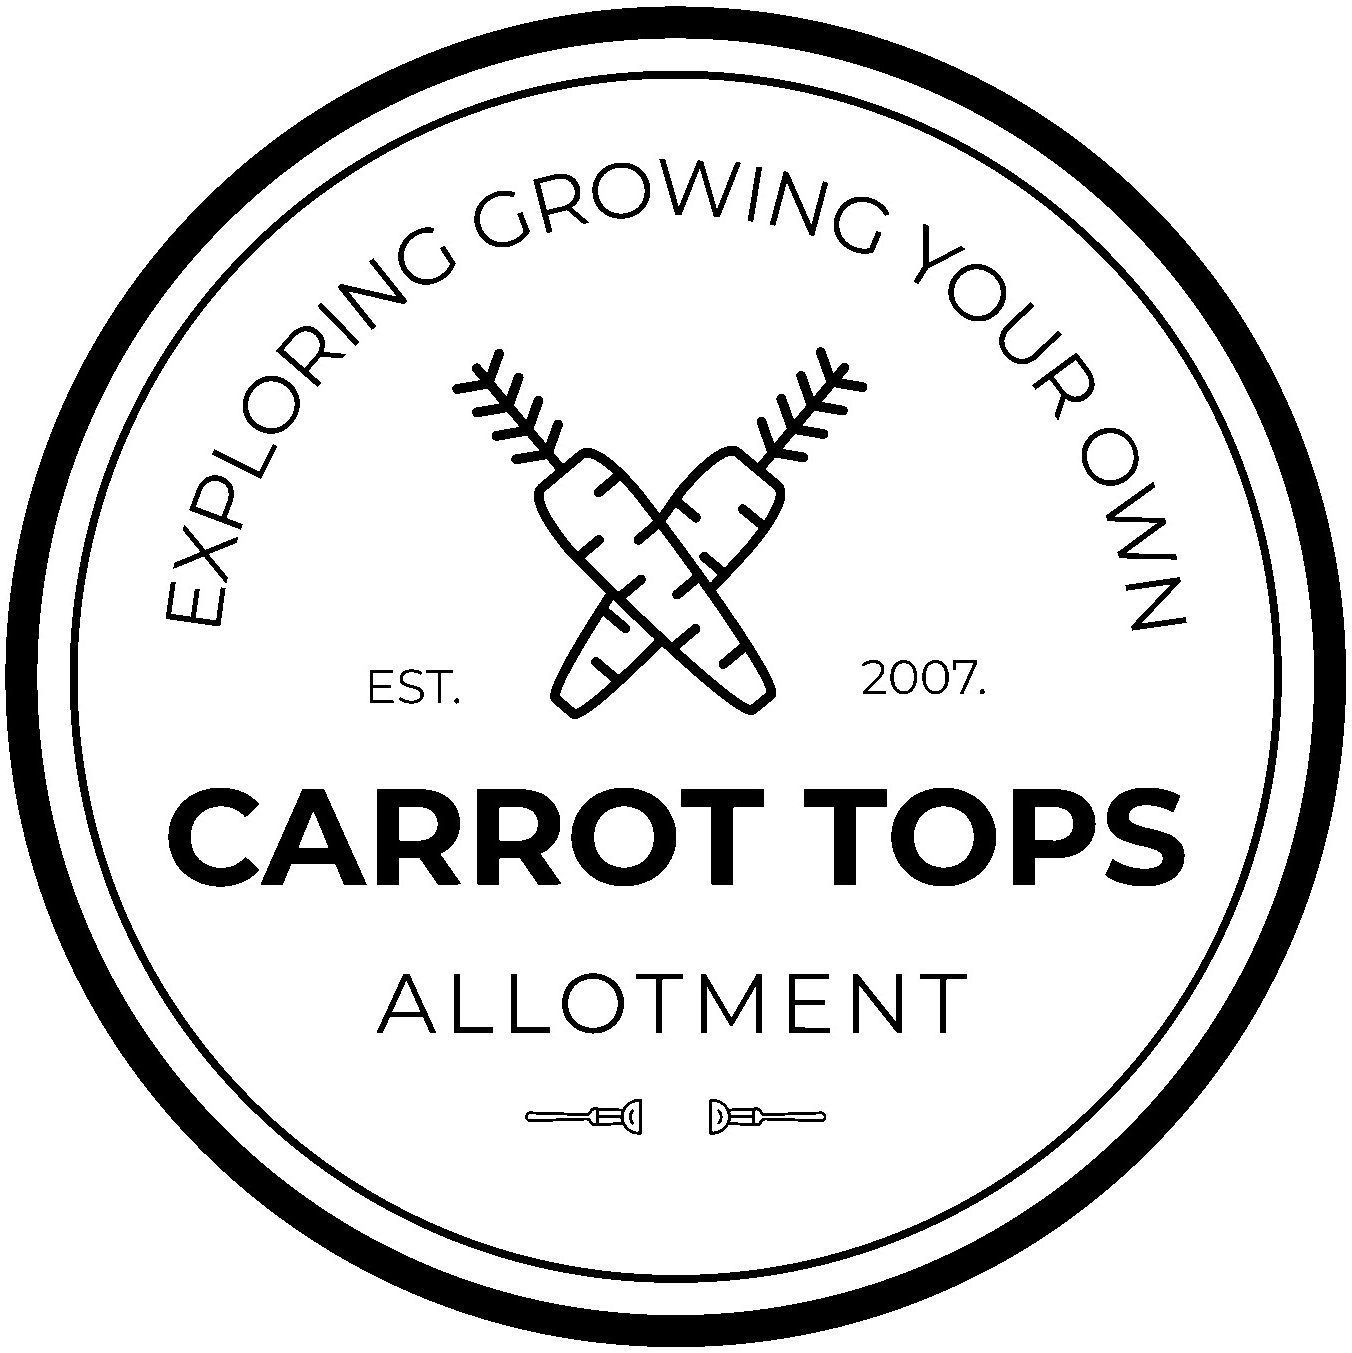 Carrot Tops Allotment